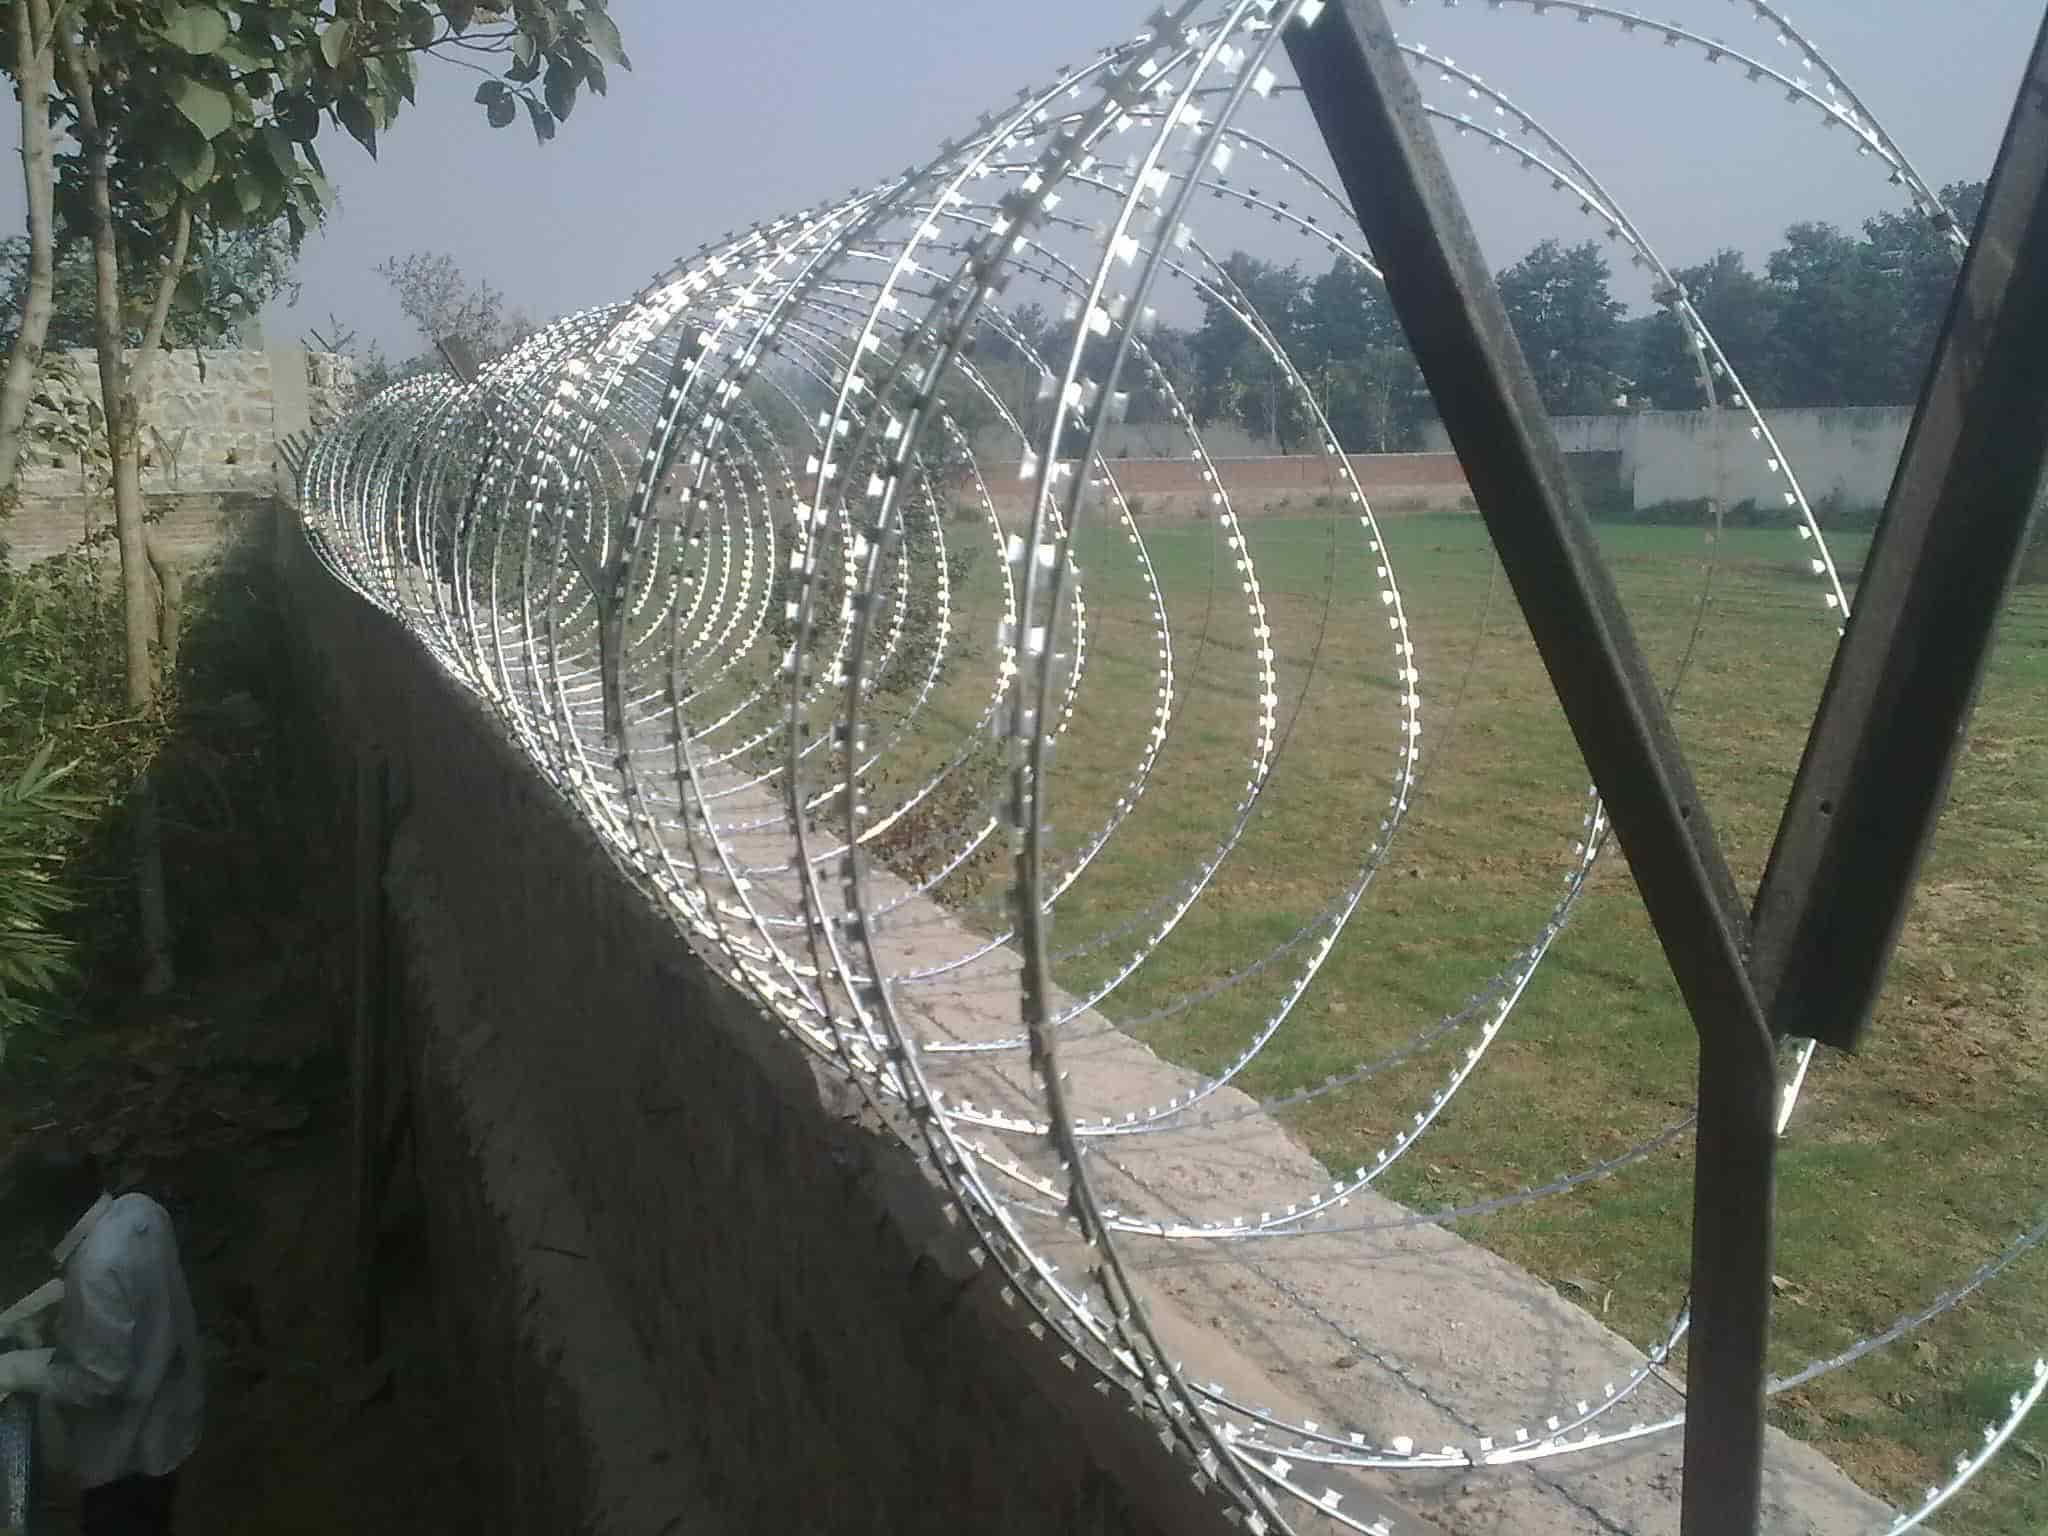 Unique Razor Wire Injury Crest - Wiring Standart Installations ...